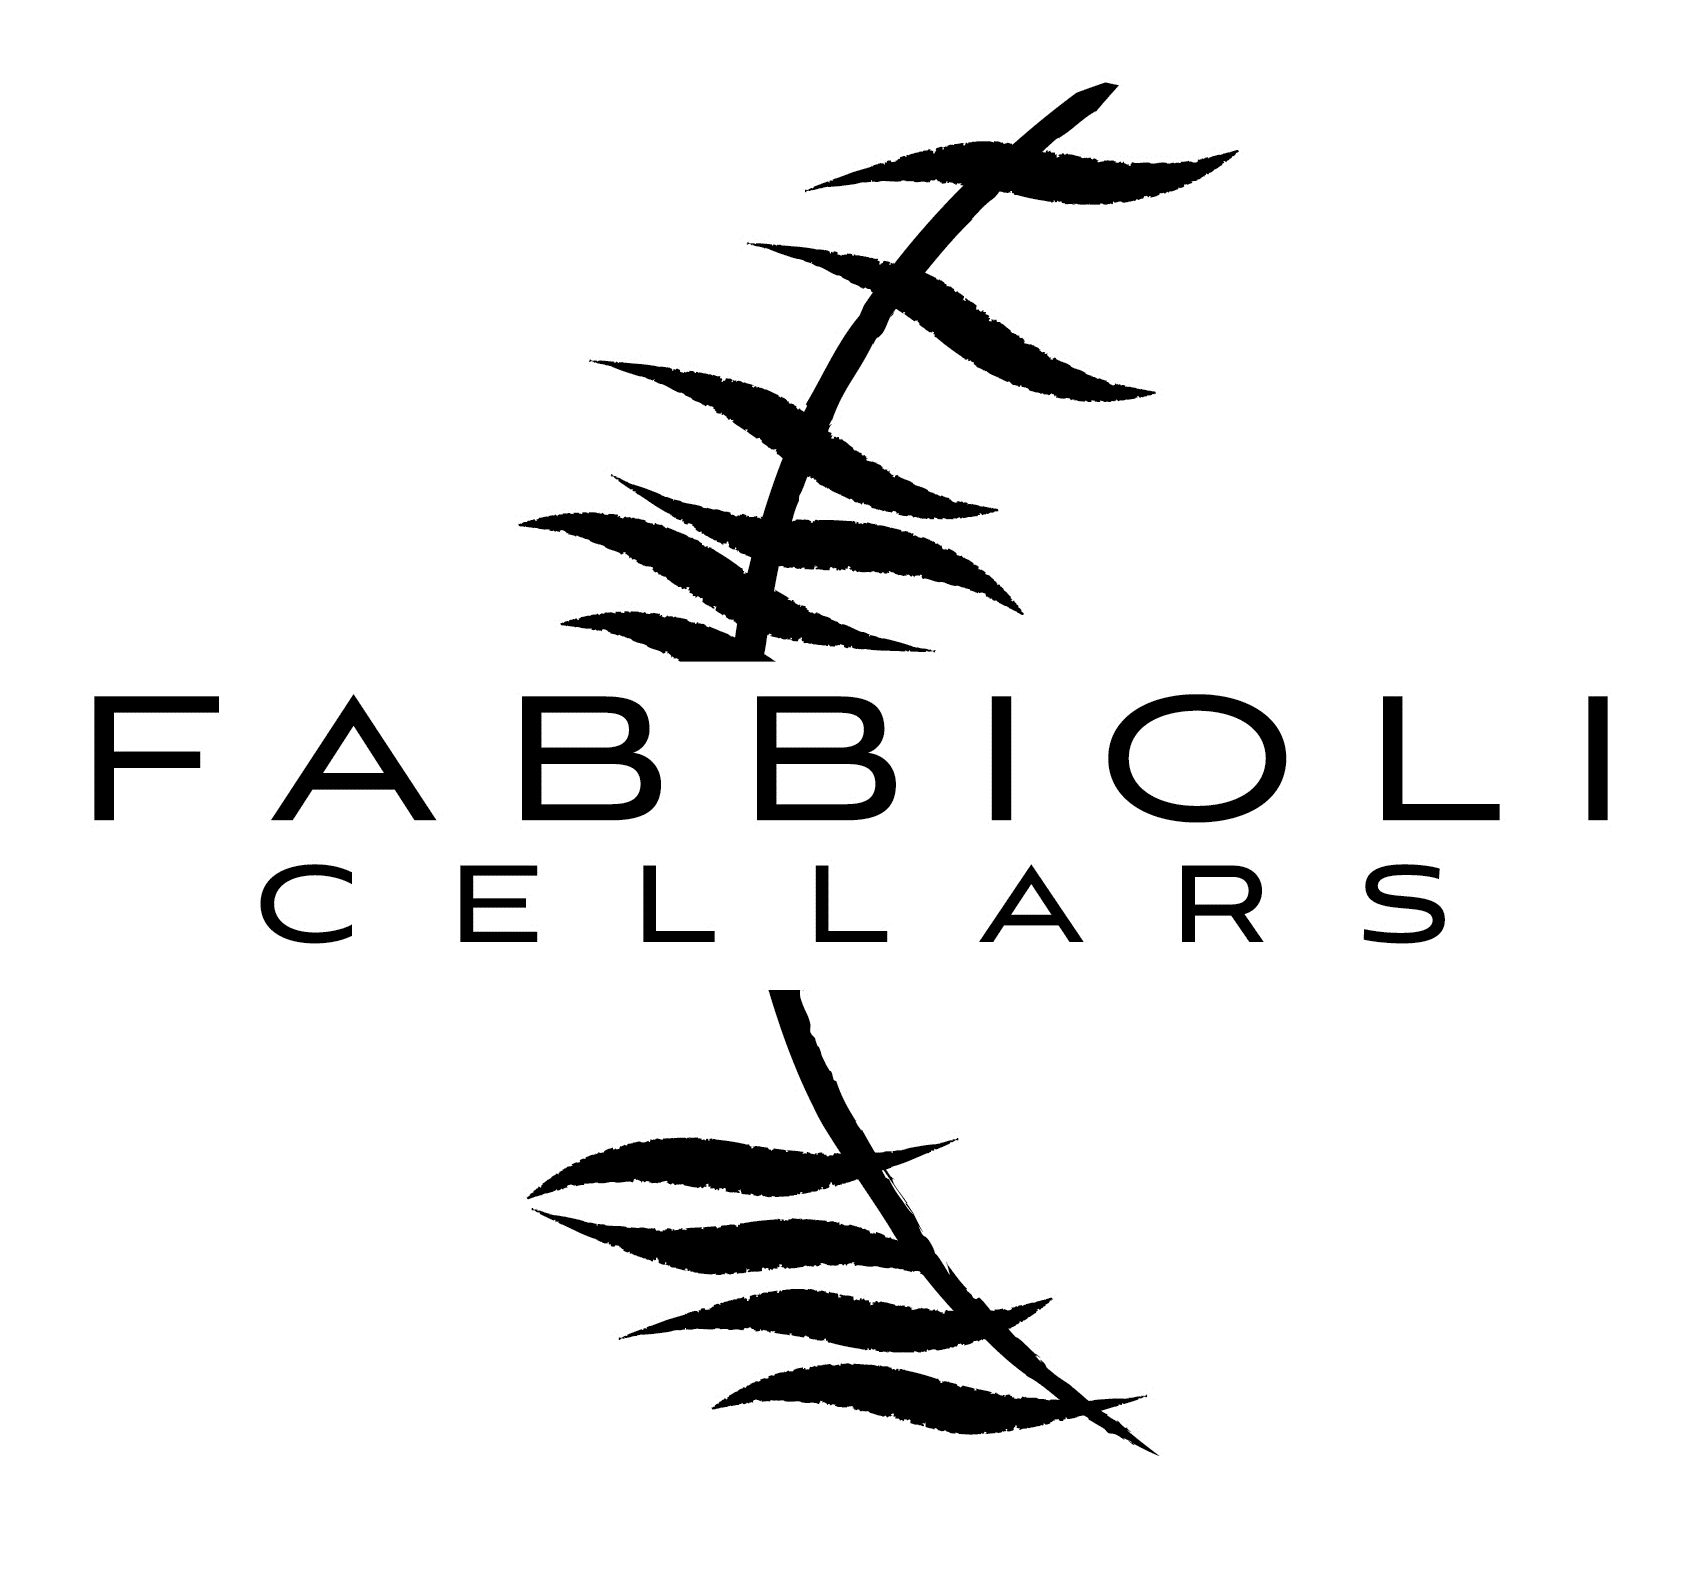 Fabbioli-Cellars-Black-on-White-Logo.jpg